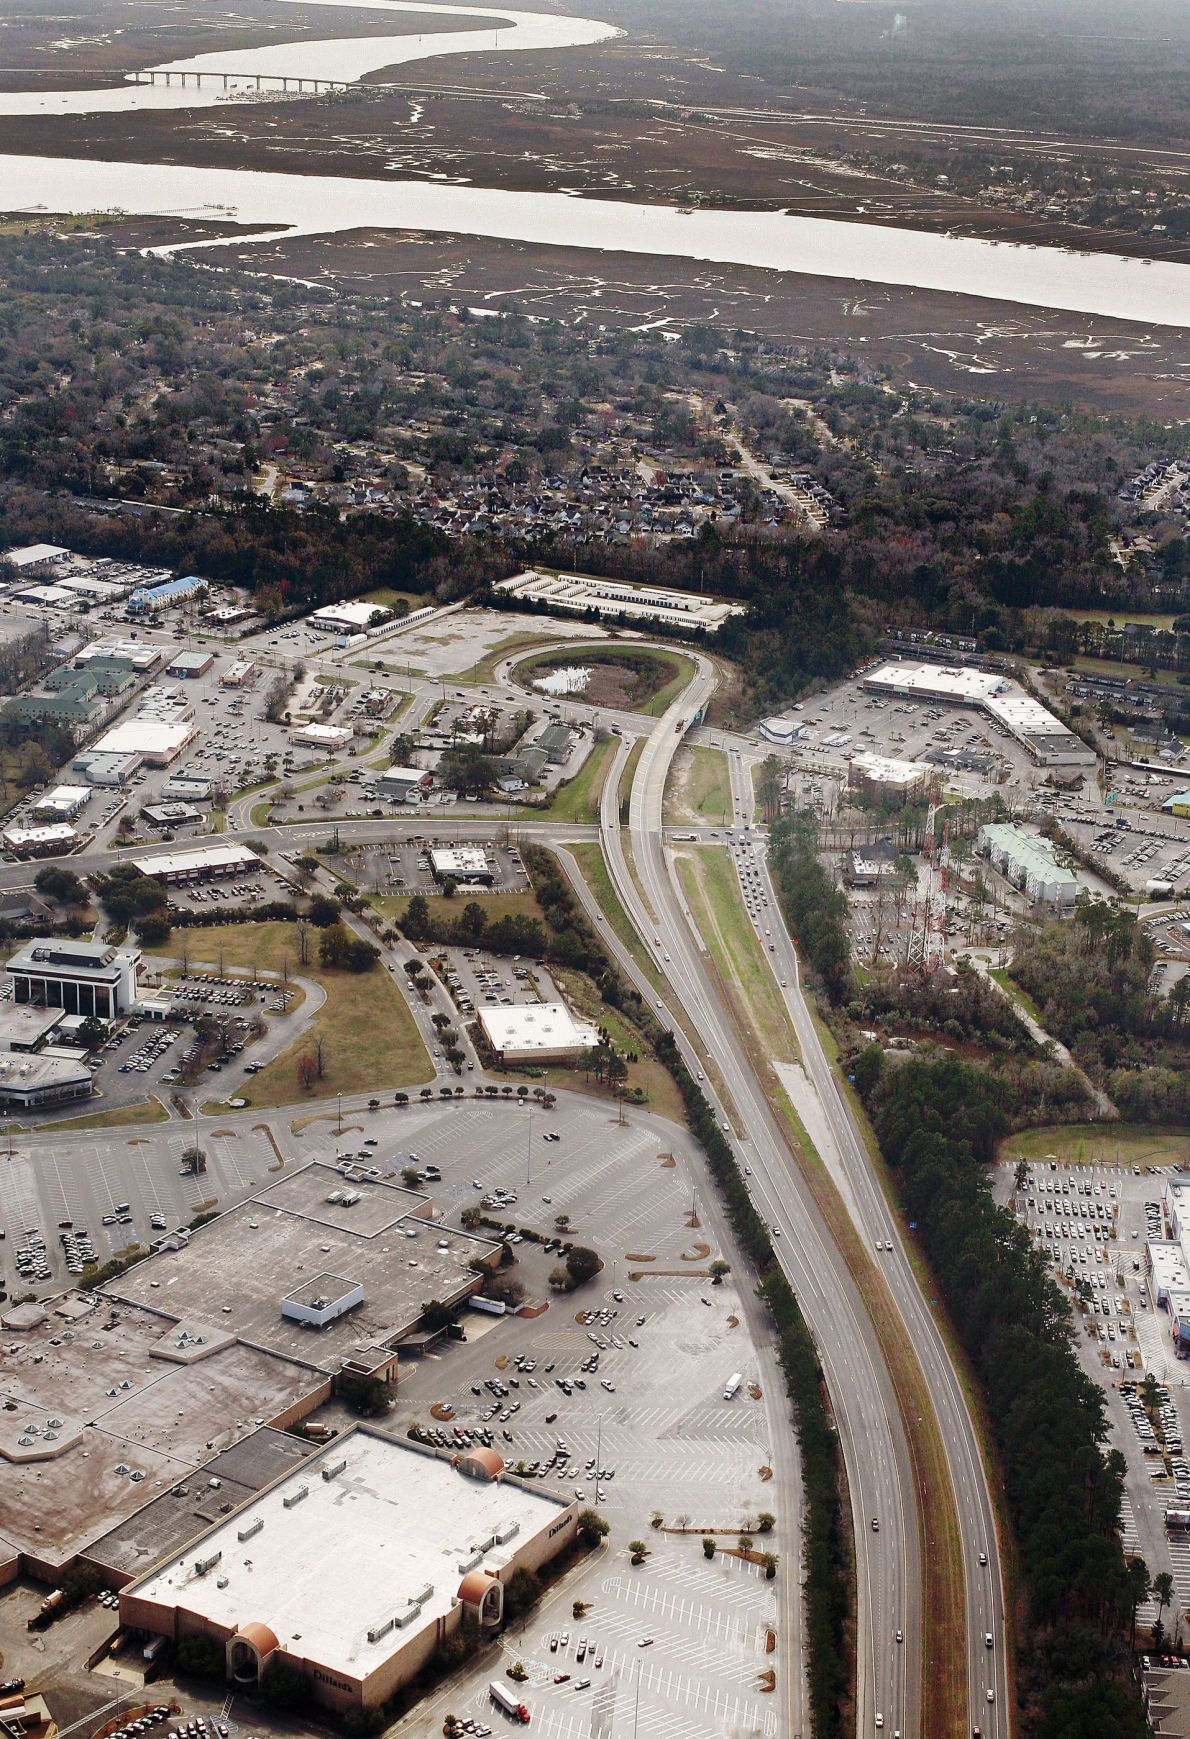 Will city's 'Hail Mary' save I-526 project? Seeks time to develop plan that may include toll option, sales tax